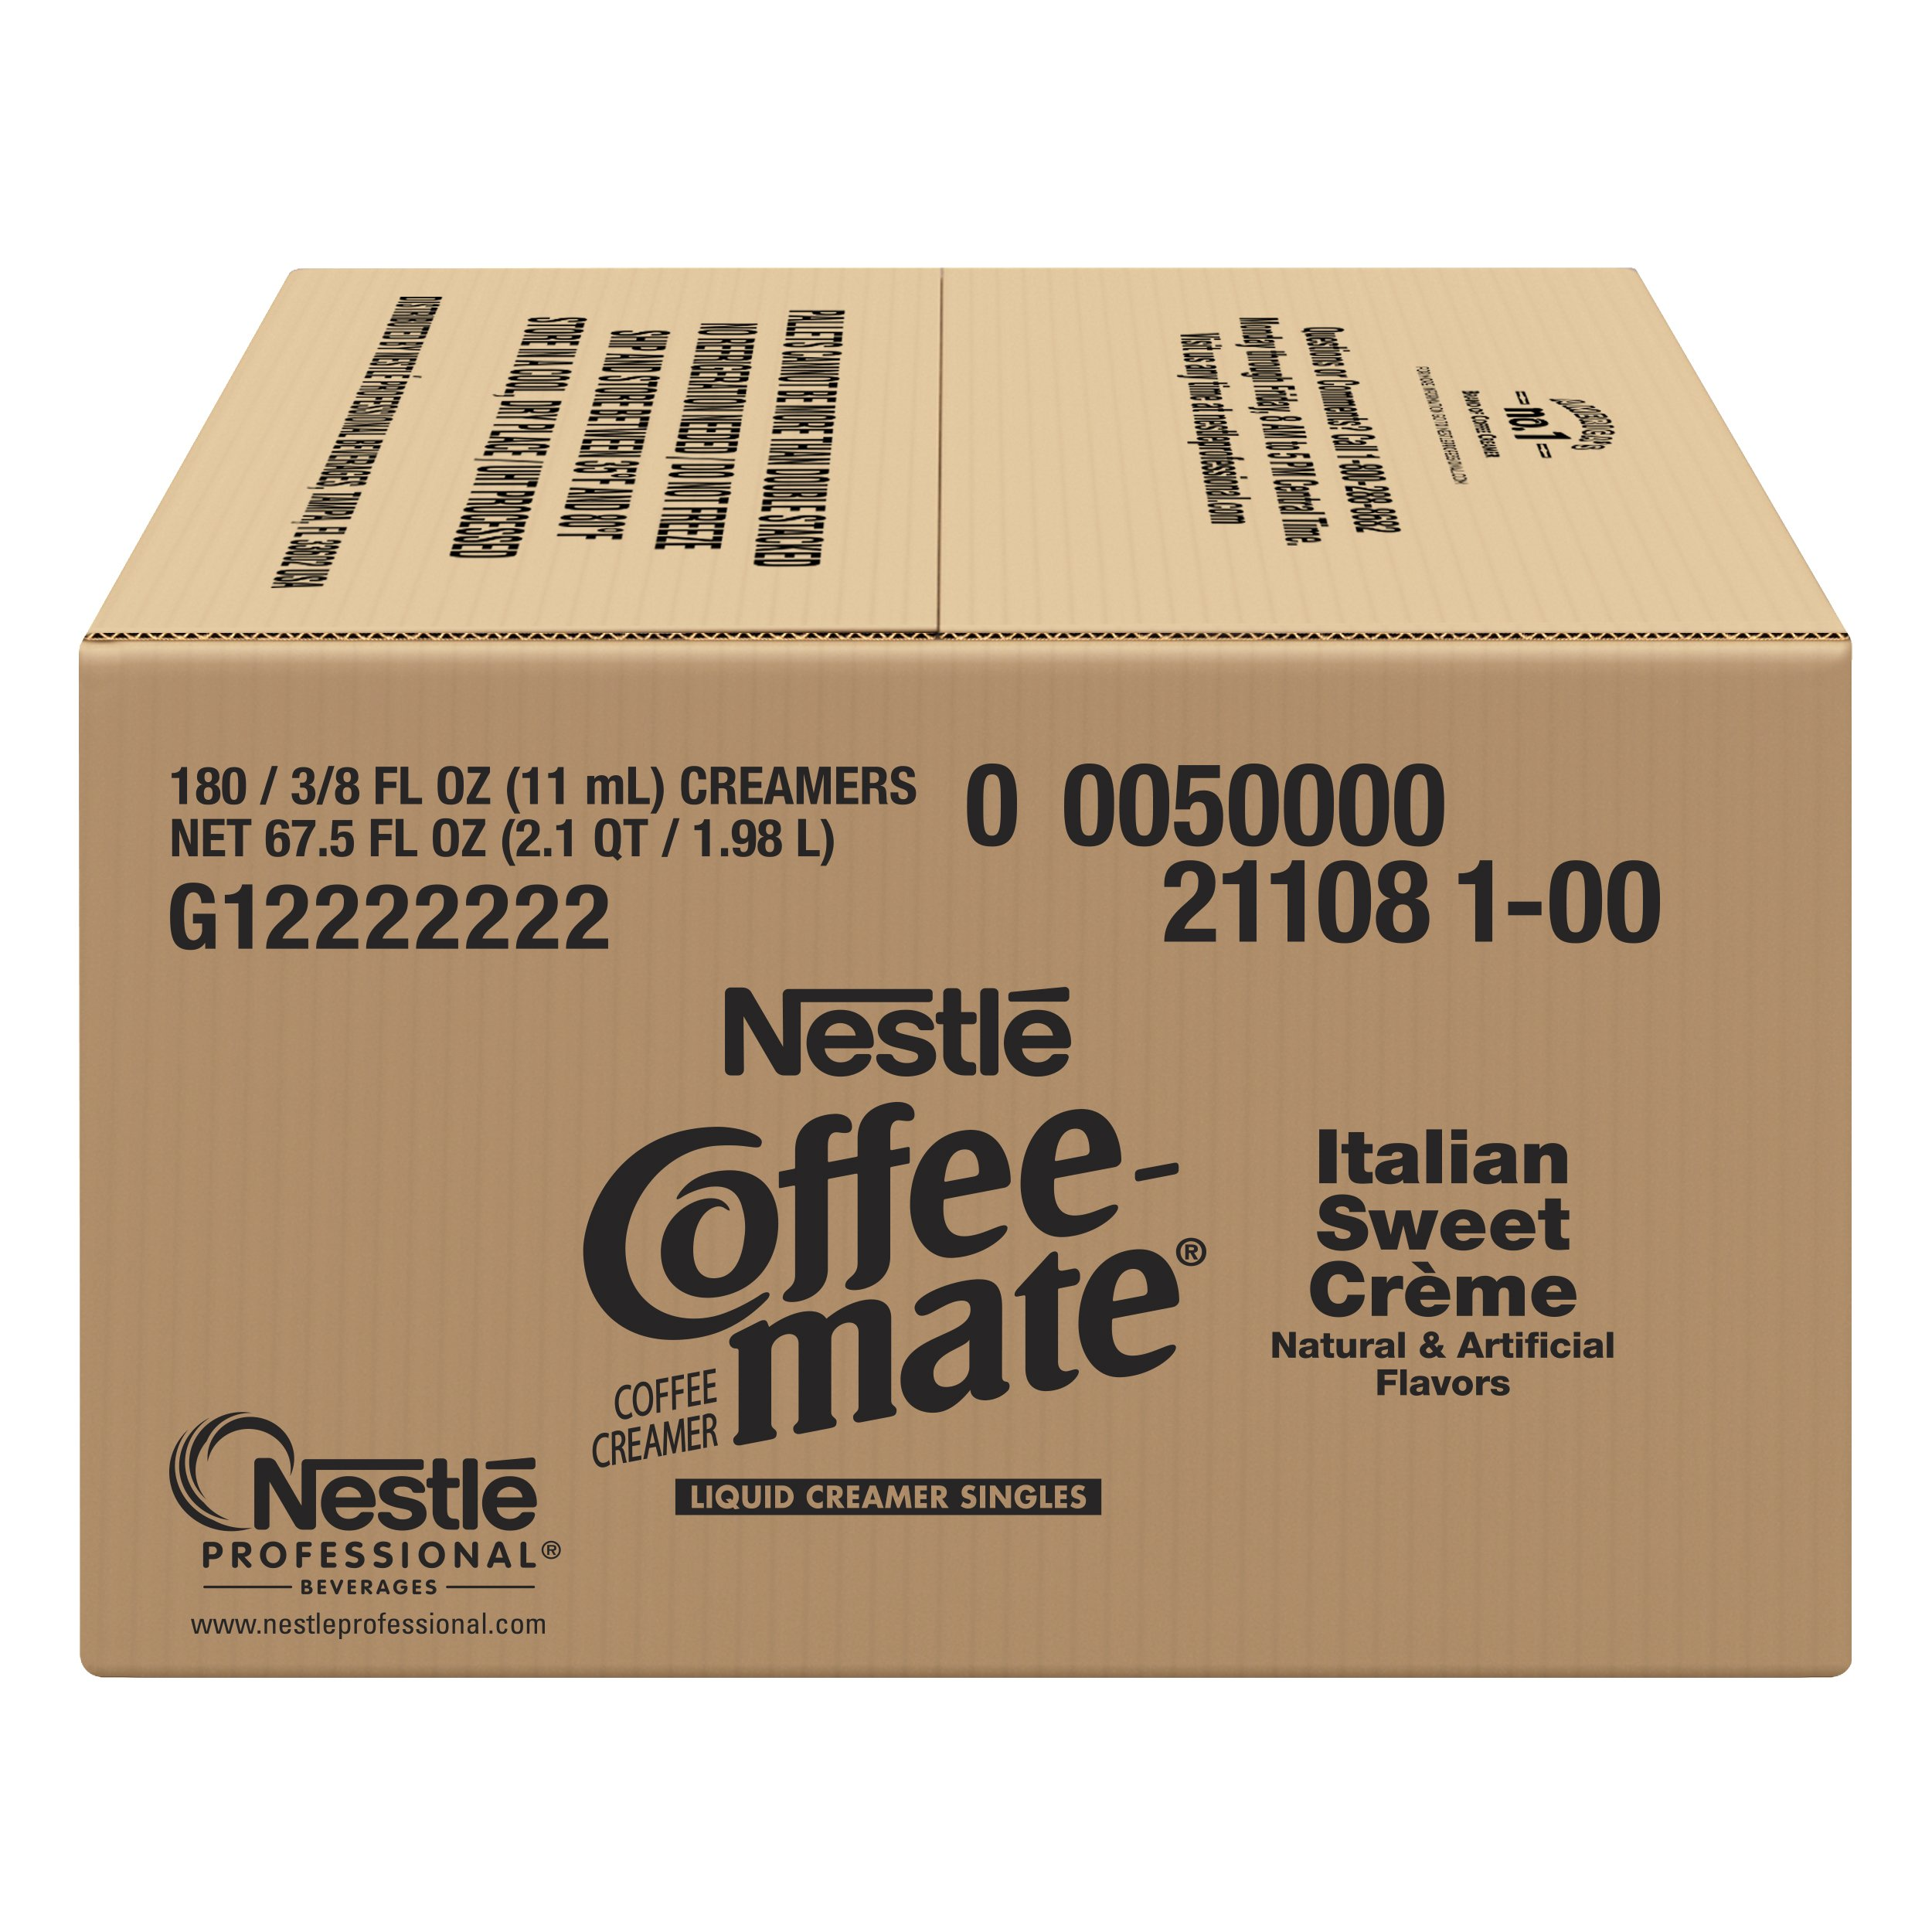 Nestle Coffee-mate Coffee Creamer, Italian Sweet Crème, liquid creamer singles, 180 Count (Pack of 1) by Nestle Coffee Mate (Image #4)